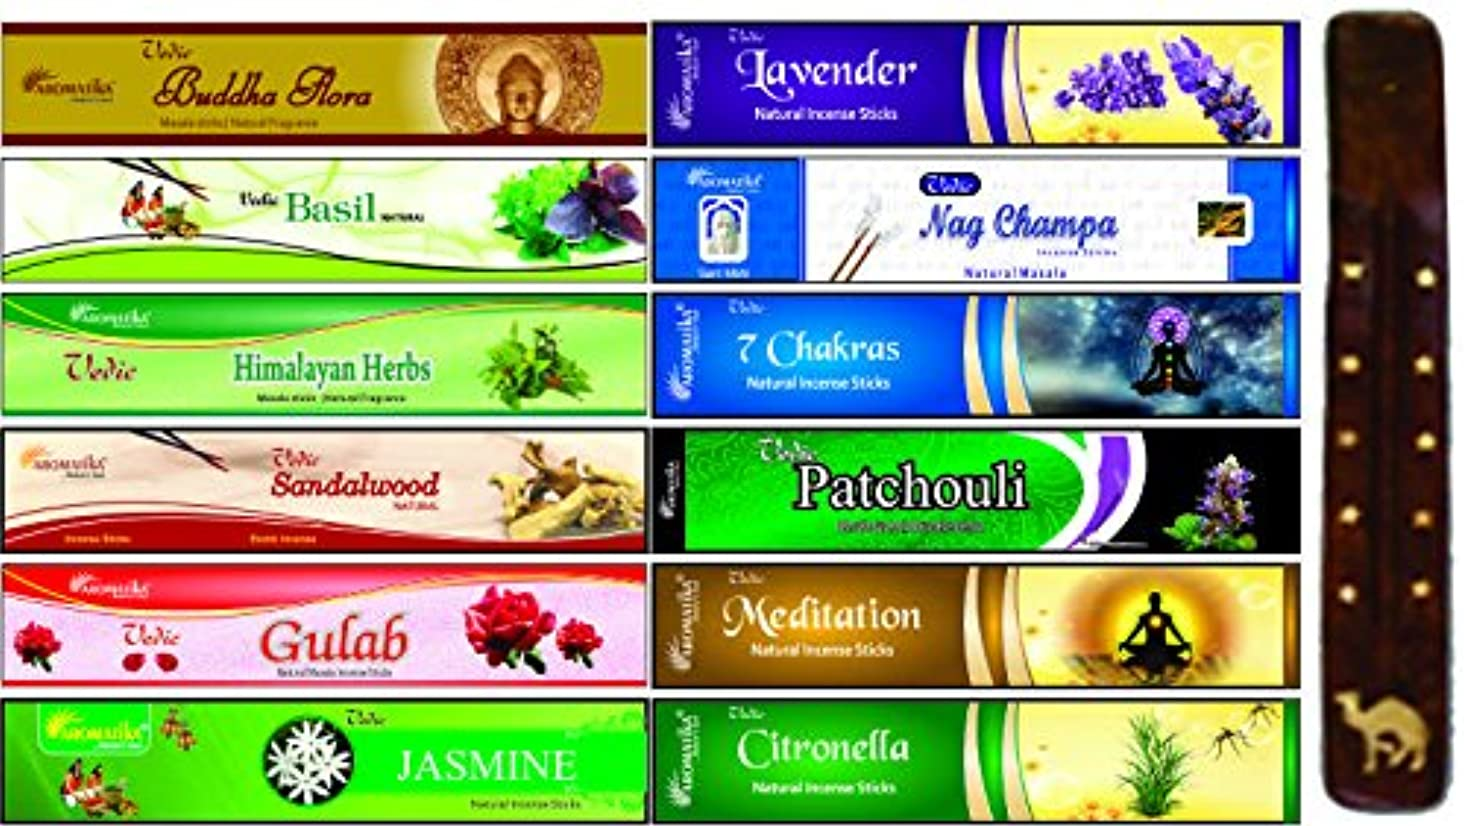 原油カップル地中海aromatika 12?Assorted Masala Incense Sticks with 10インチLong木製香炉